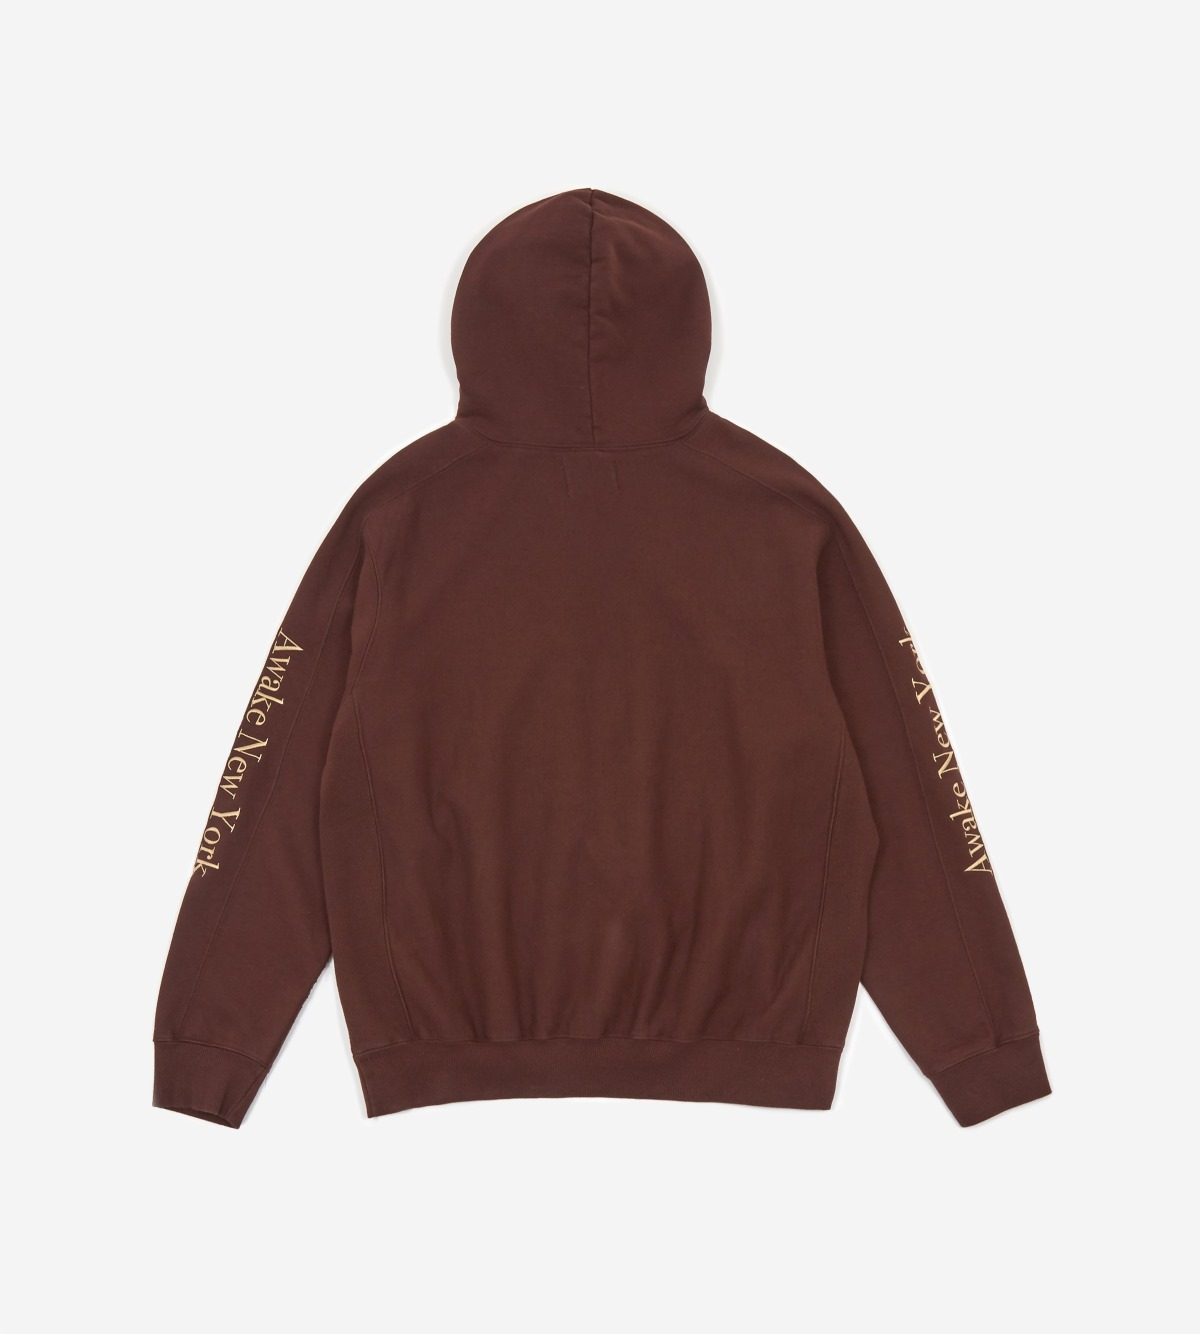 Awake Classic Outline Logo Paneled Embroidered Hoodie Brown 1